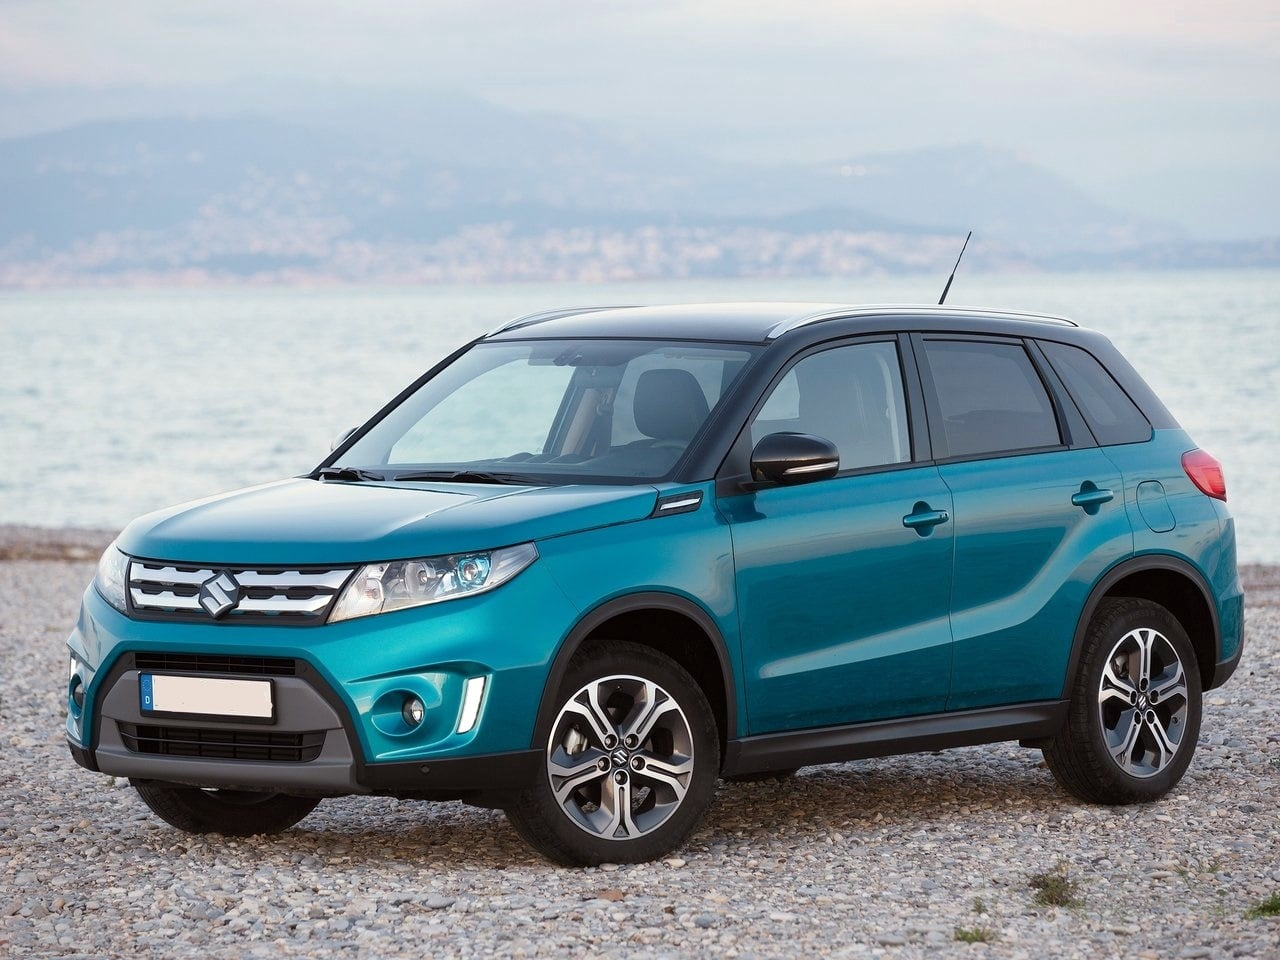 new maruti grand vitara india launch in offing expect scross like price. Black Bedroom Furniture Sets. Home Design Ideas